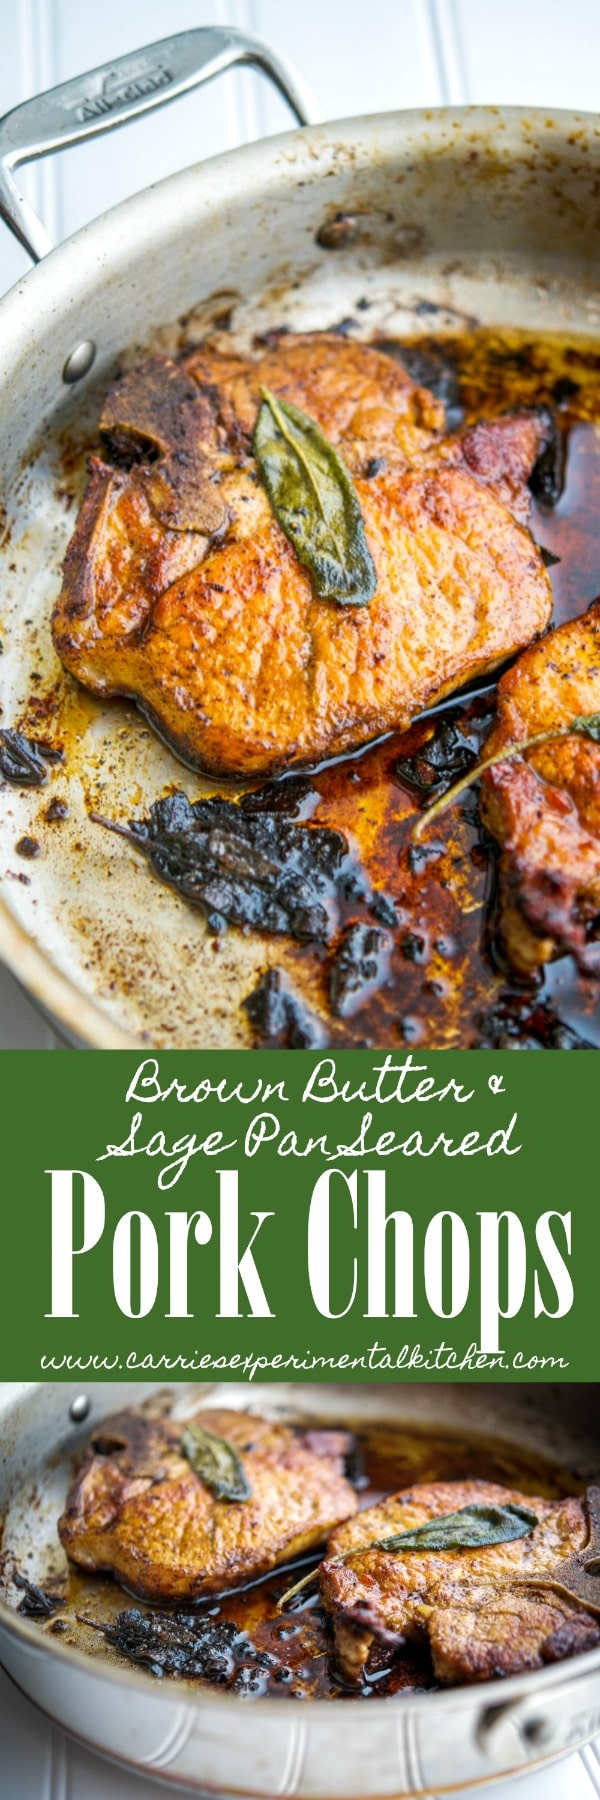 These savory Brown Butter & Sage Pan Seared Pork Chops contain three ingredients and can be ready in 15 minutes for a delicious and easy weeknight meal.